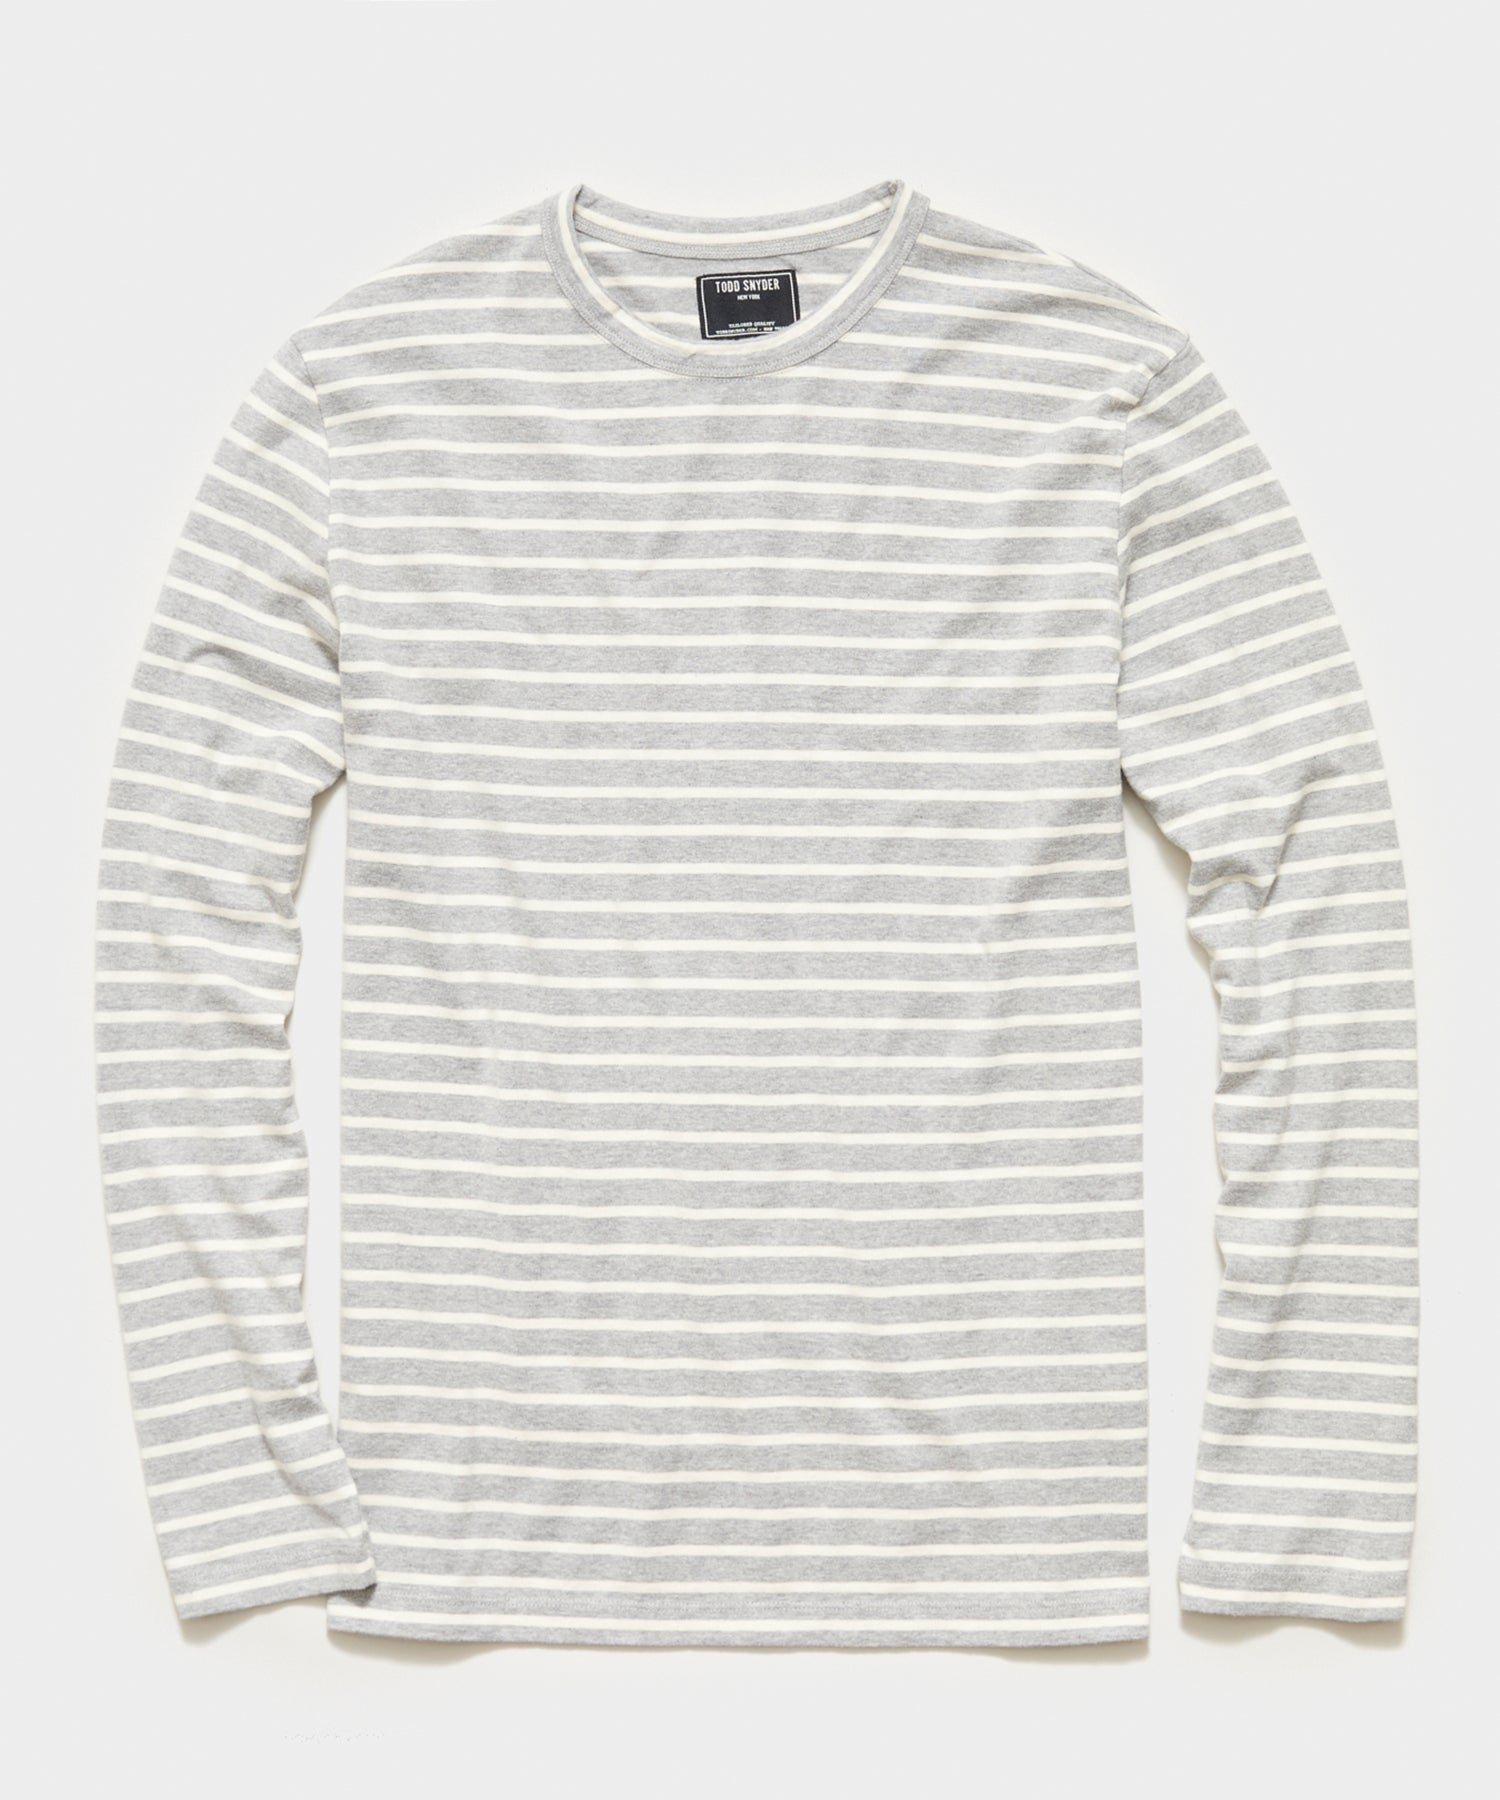 Long Sleeve Japanese Nautical Stripe Tee in Grey